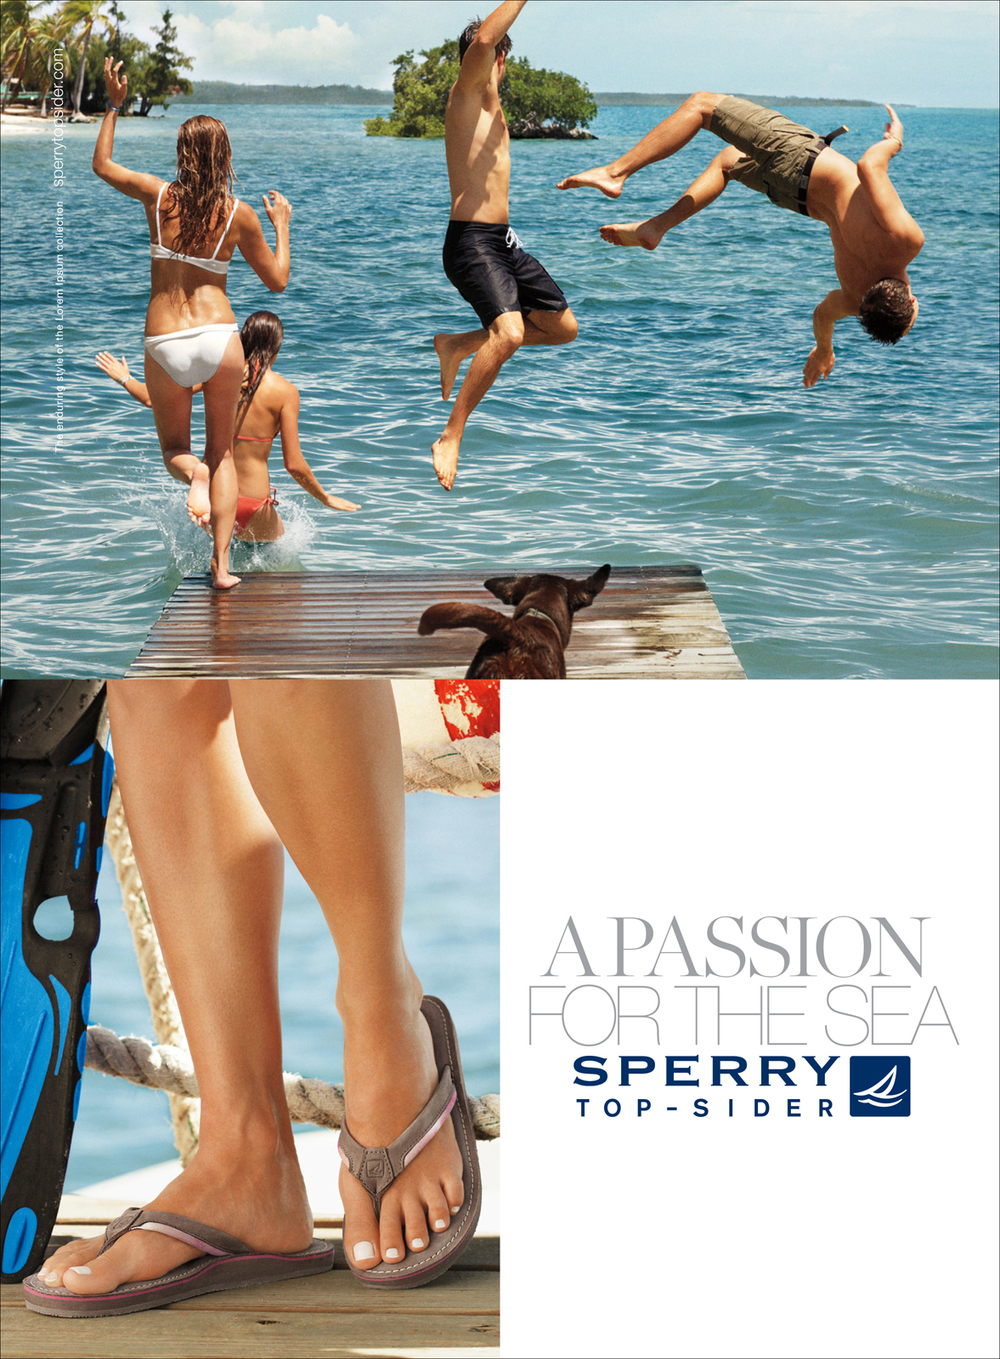 SC_ADVERTISING_SPERRY_KEYS_SS_2010_01.jpg